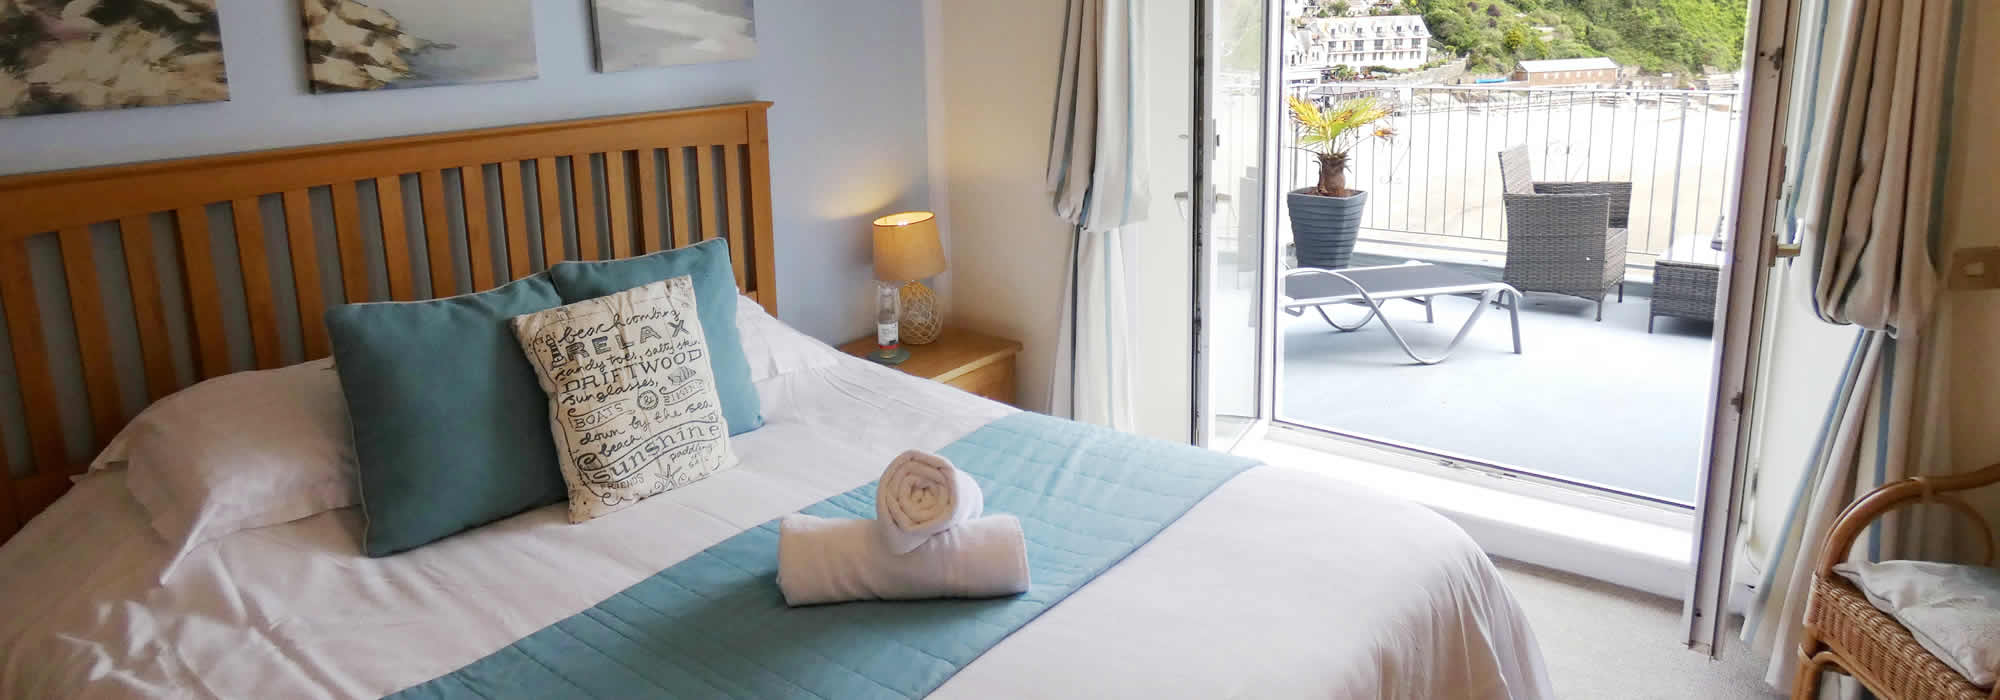 Quality holiday accommodation at The Watermark in Looe, Cornwall